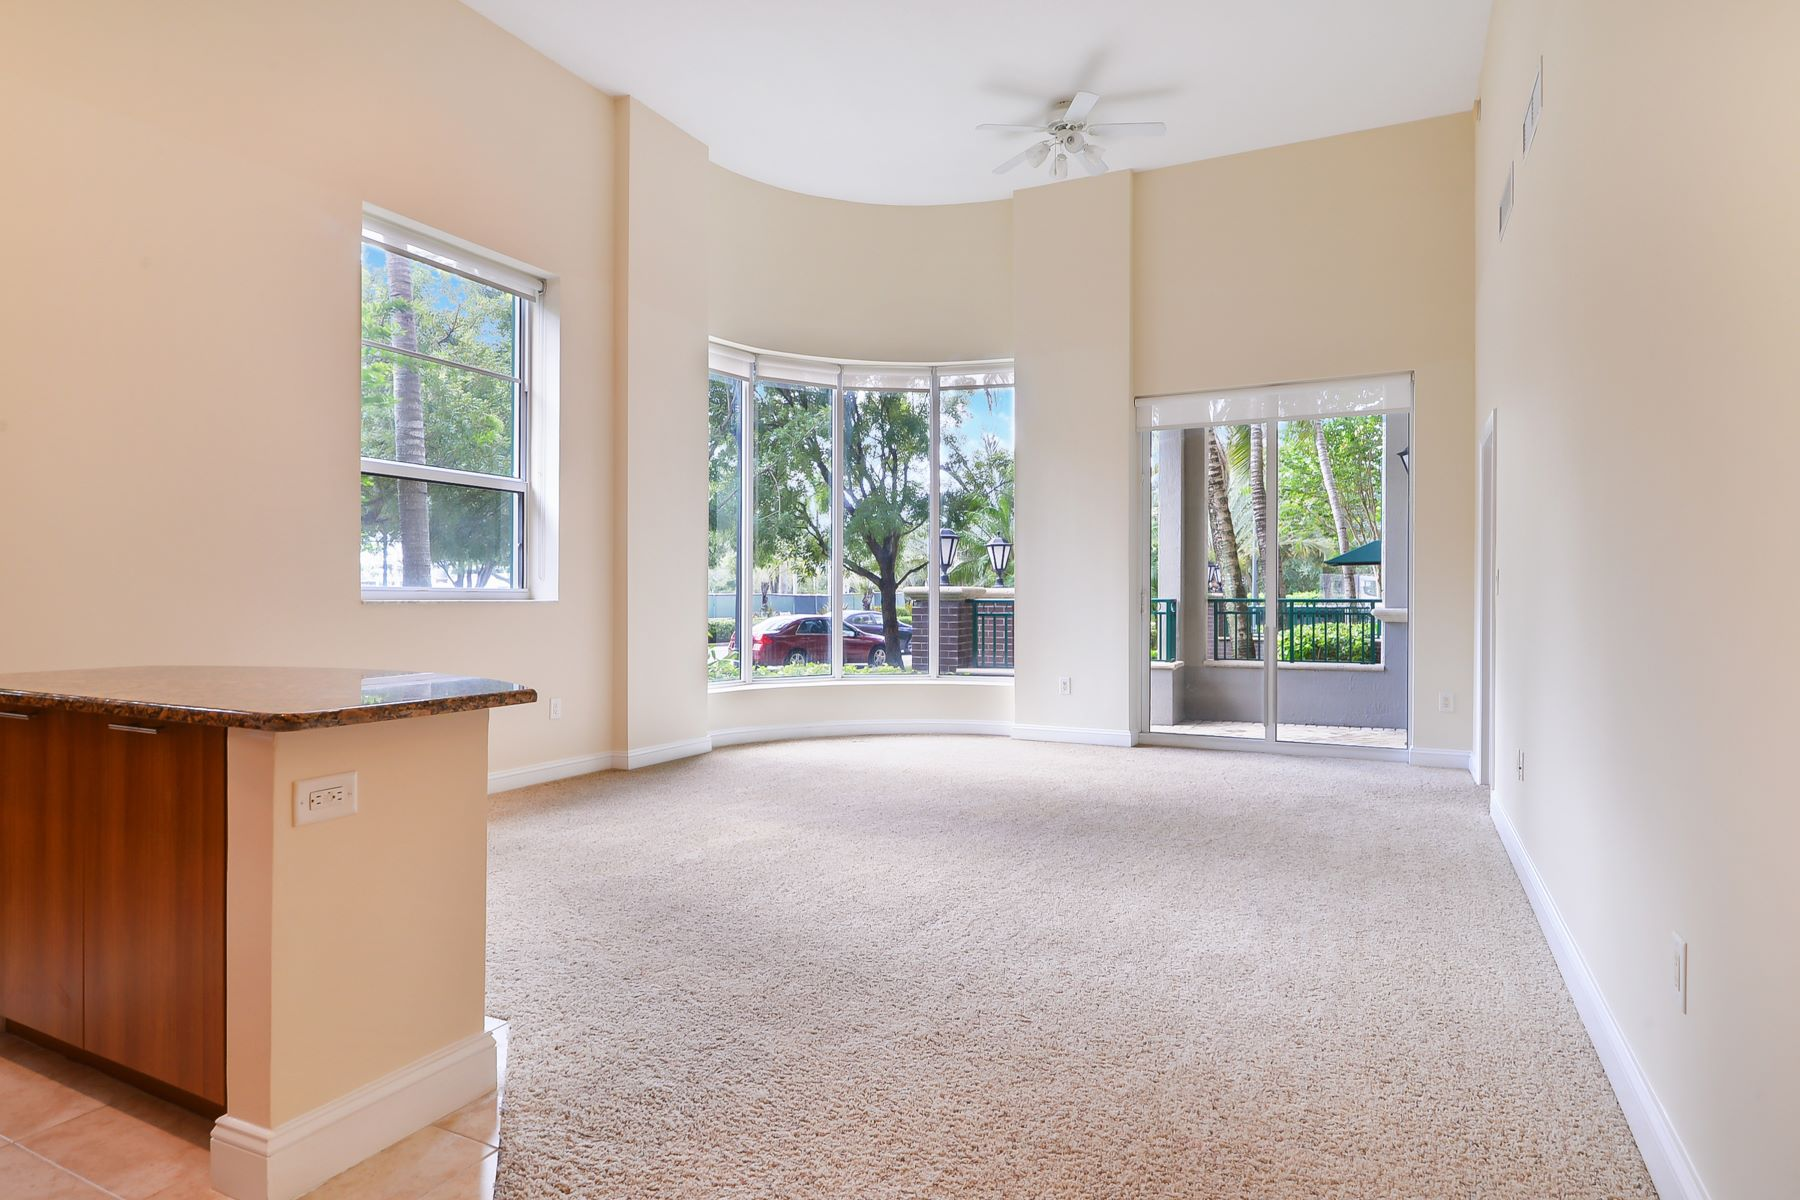 Condominiums for Active at 510 Nw 84th Ave 109 Plantation, Florida 33324 United States